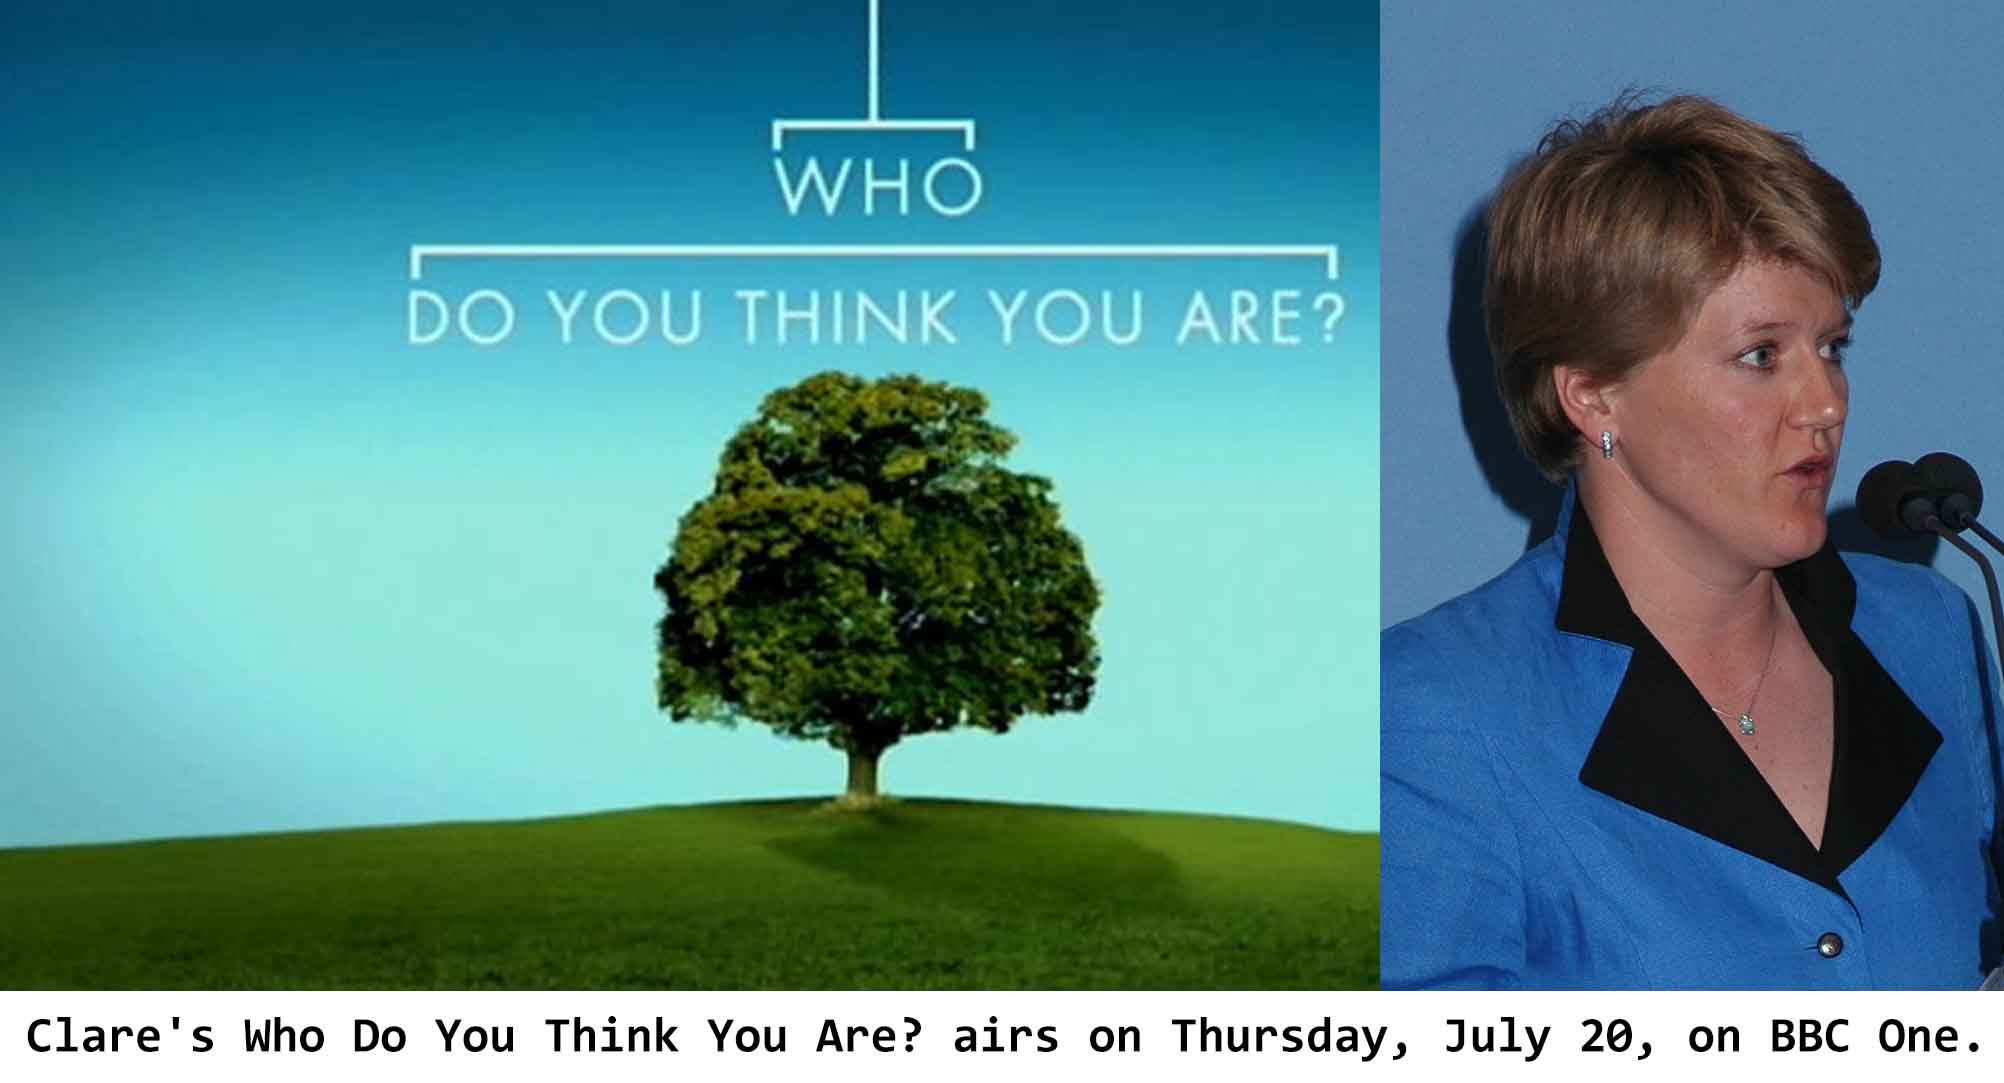 Clare's Who Do You Think You Are? airs on Thursday, July 20, on BBC One.